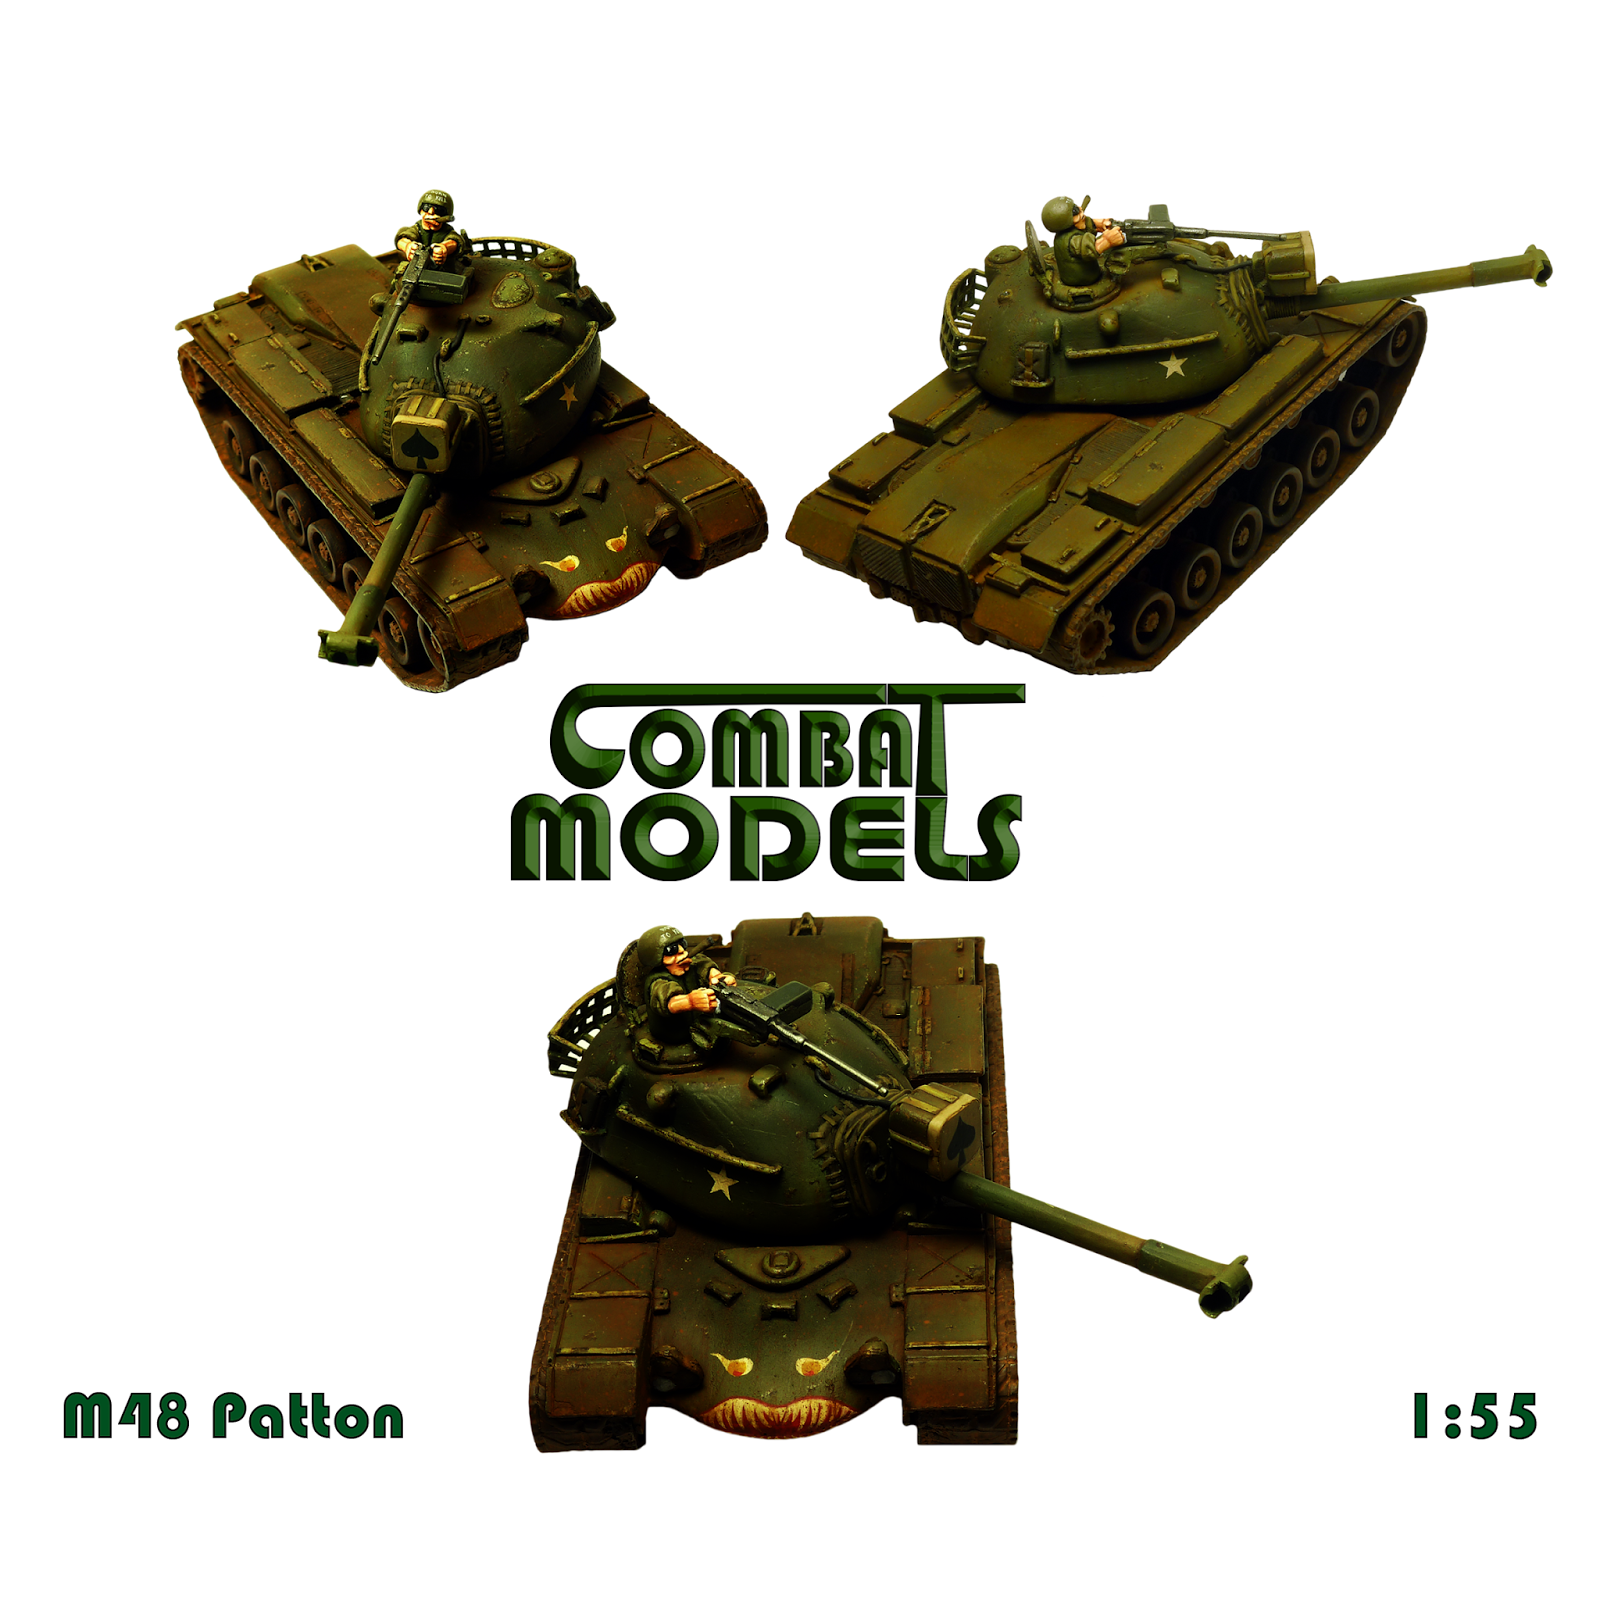 M48A3 Patton Combat Models